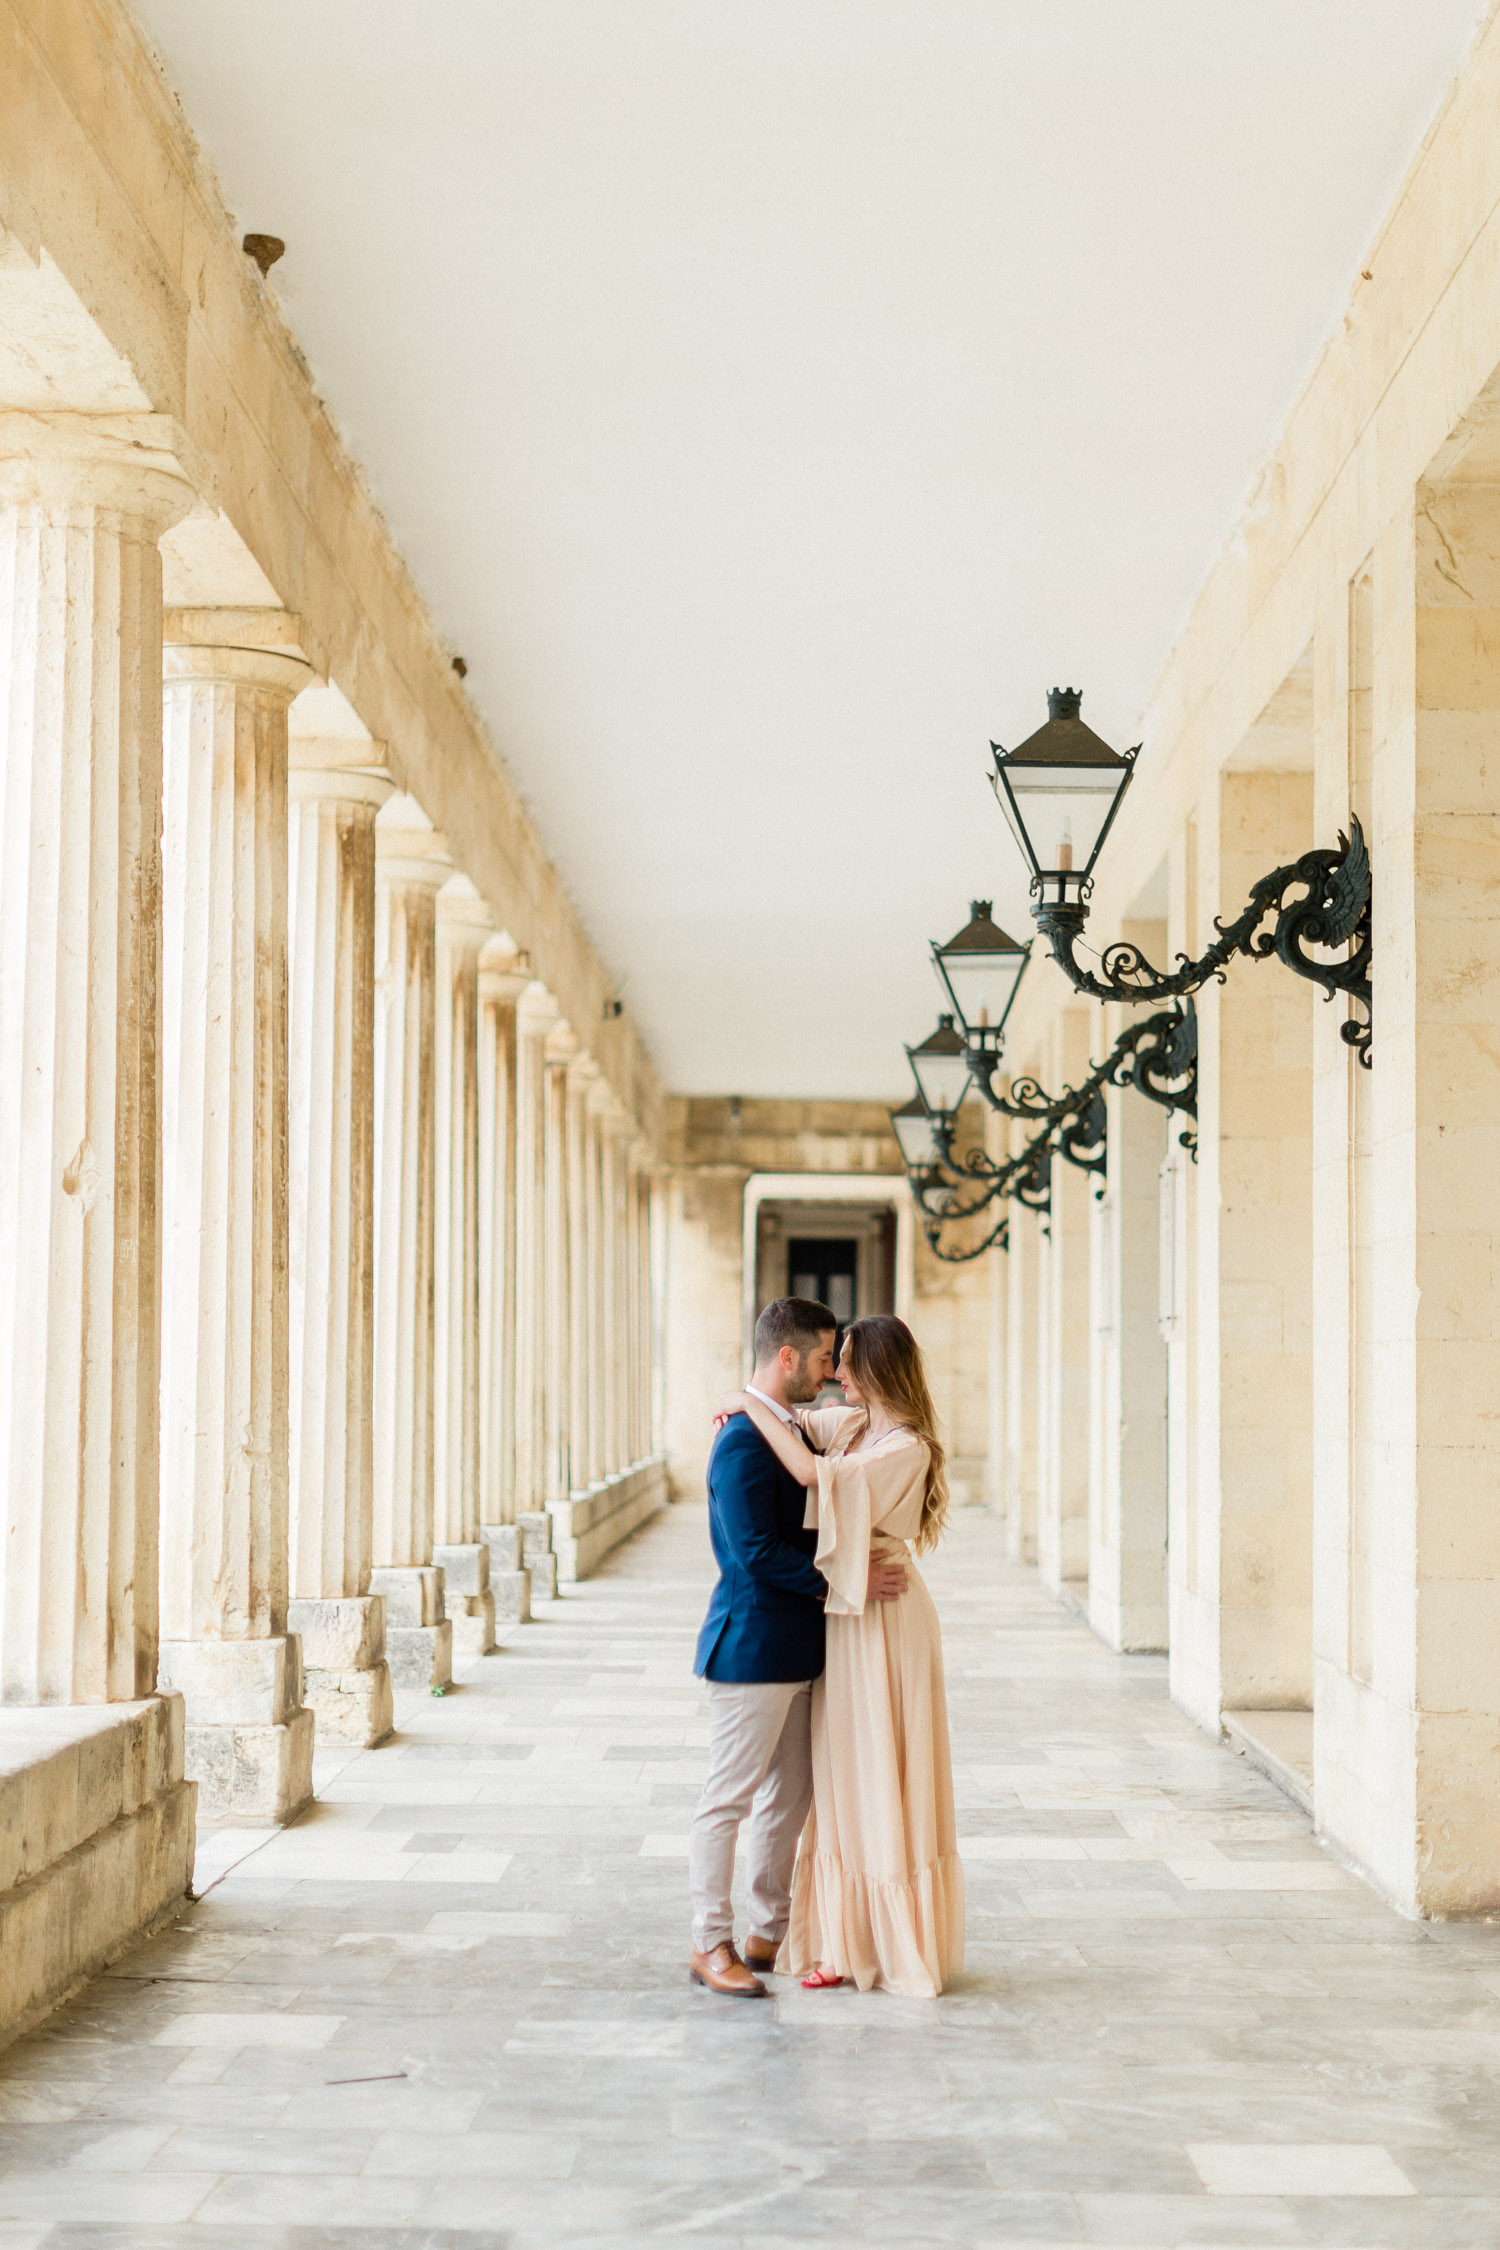 lovely meeting of a couple, while their engagement shooting at the Palace of St. Michael and St. George in Corfu.